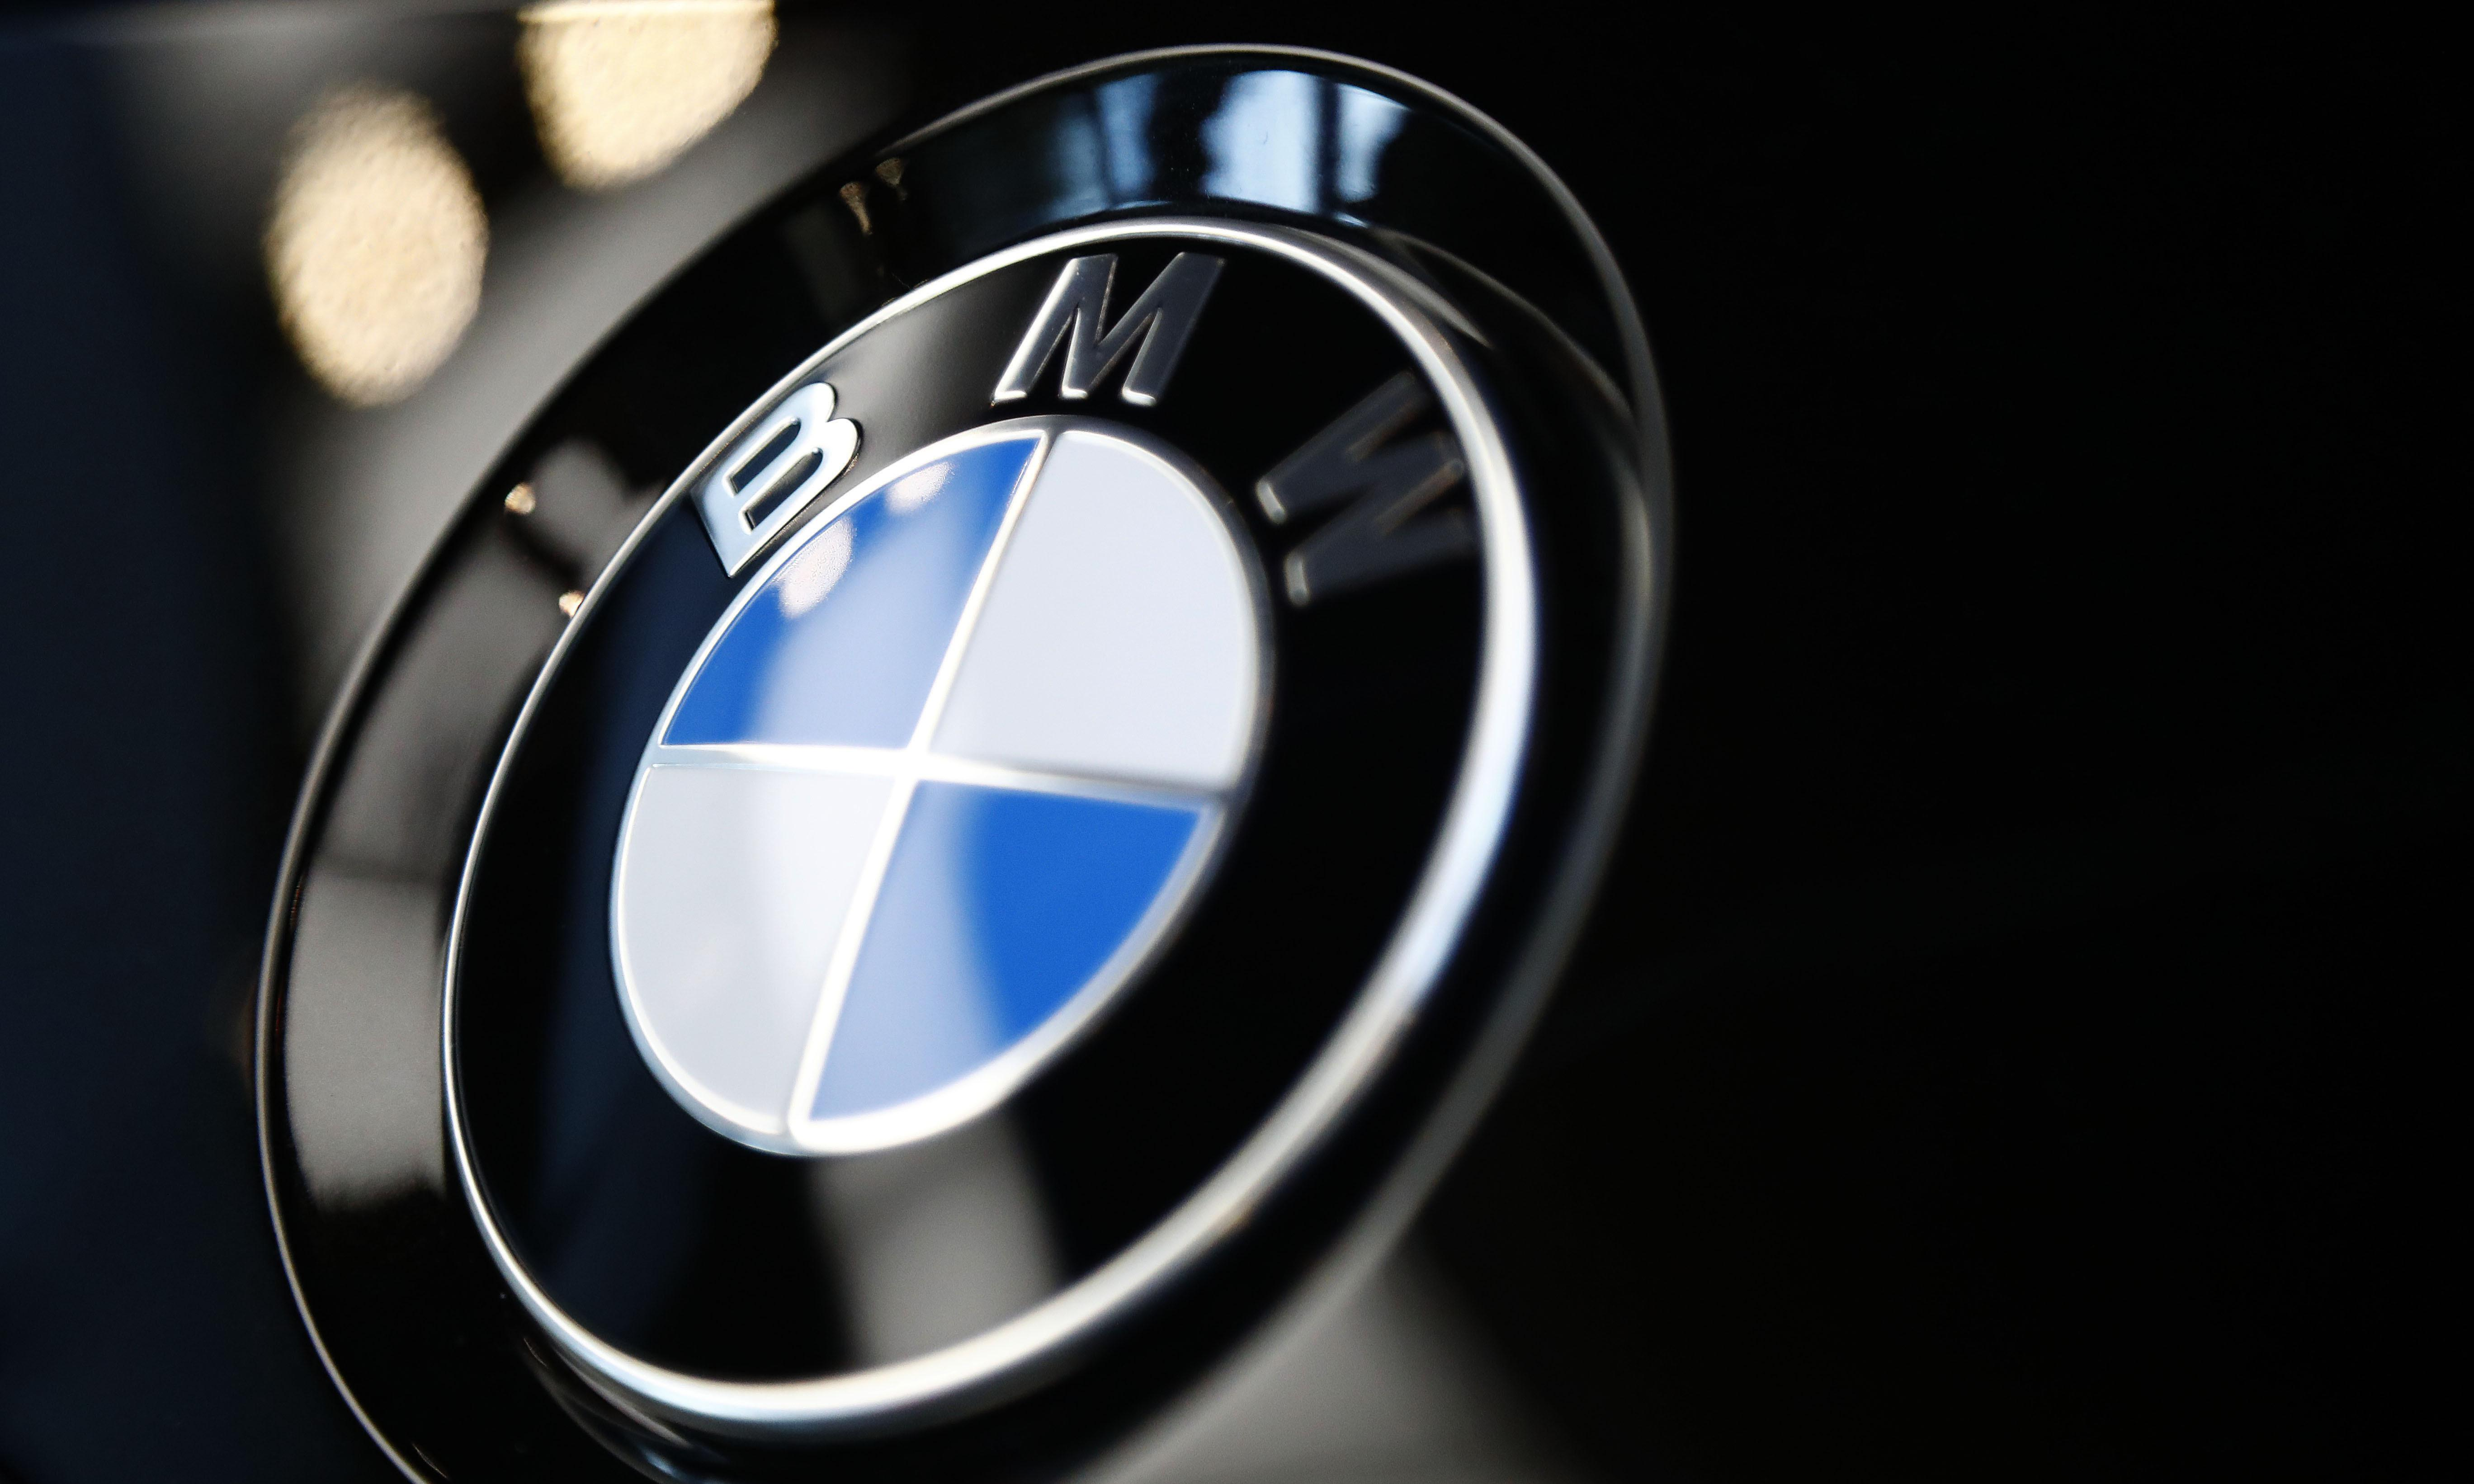 BMW urgently recalls 12,000 vehicles over airbag safety concerns